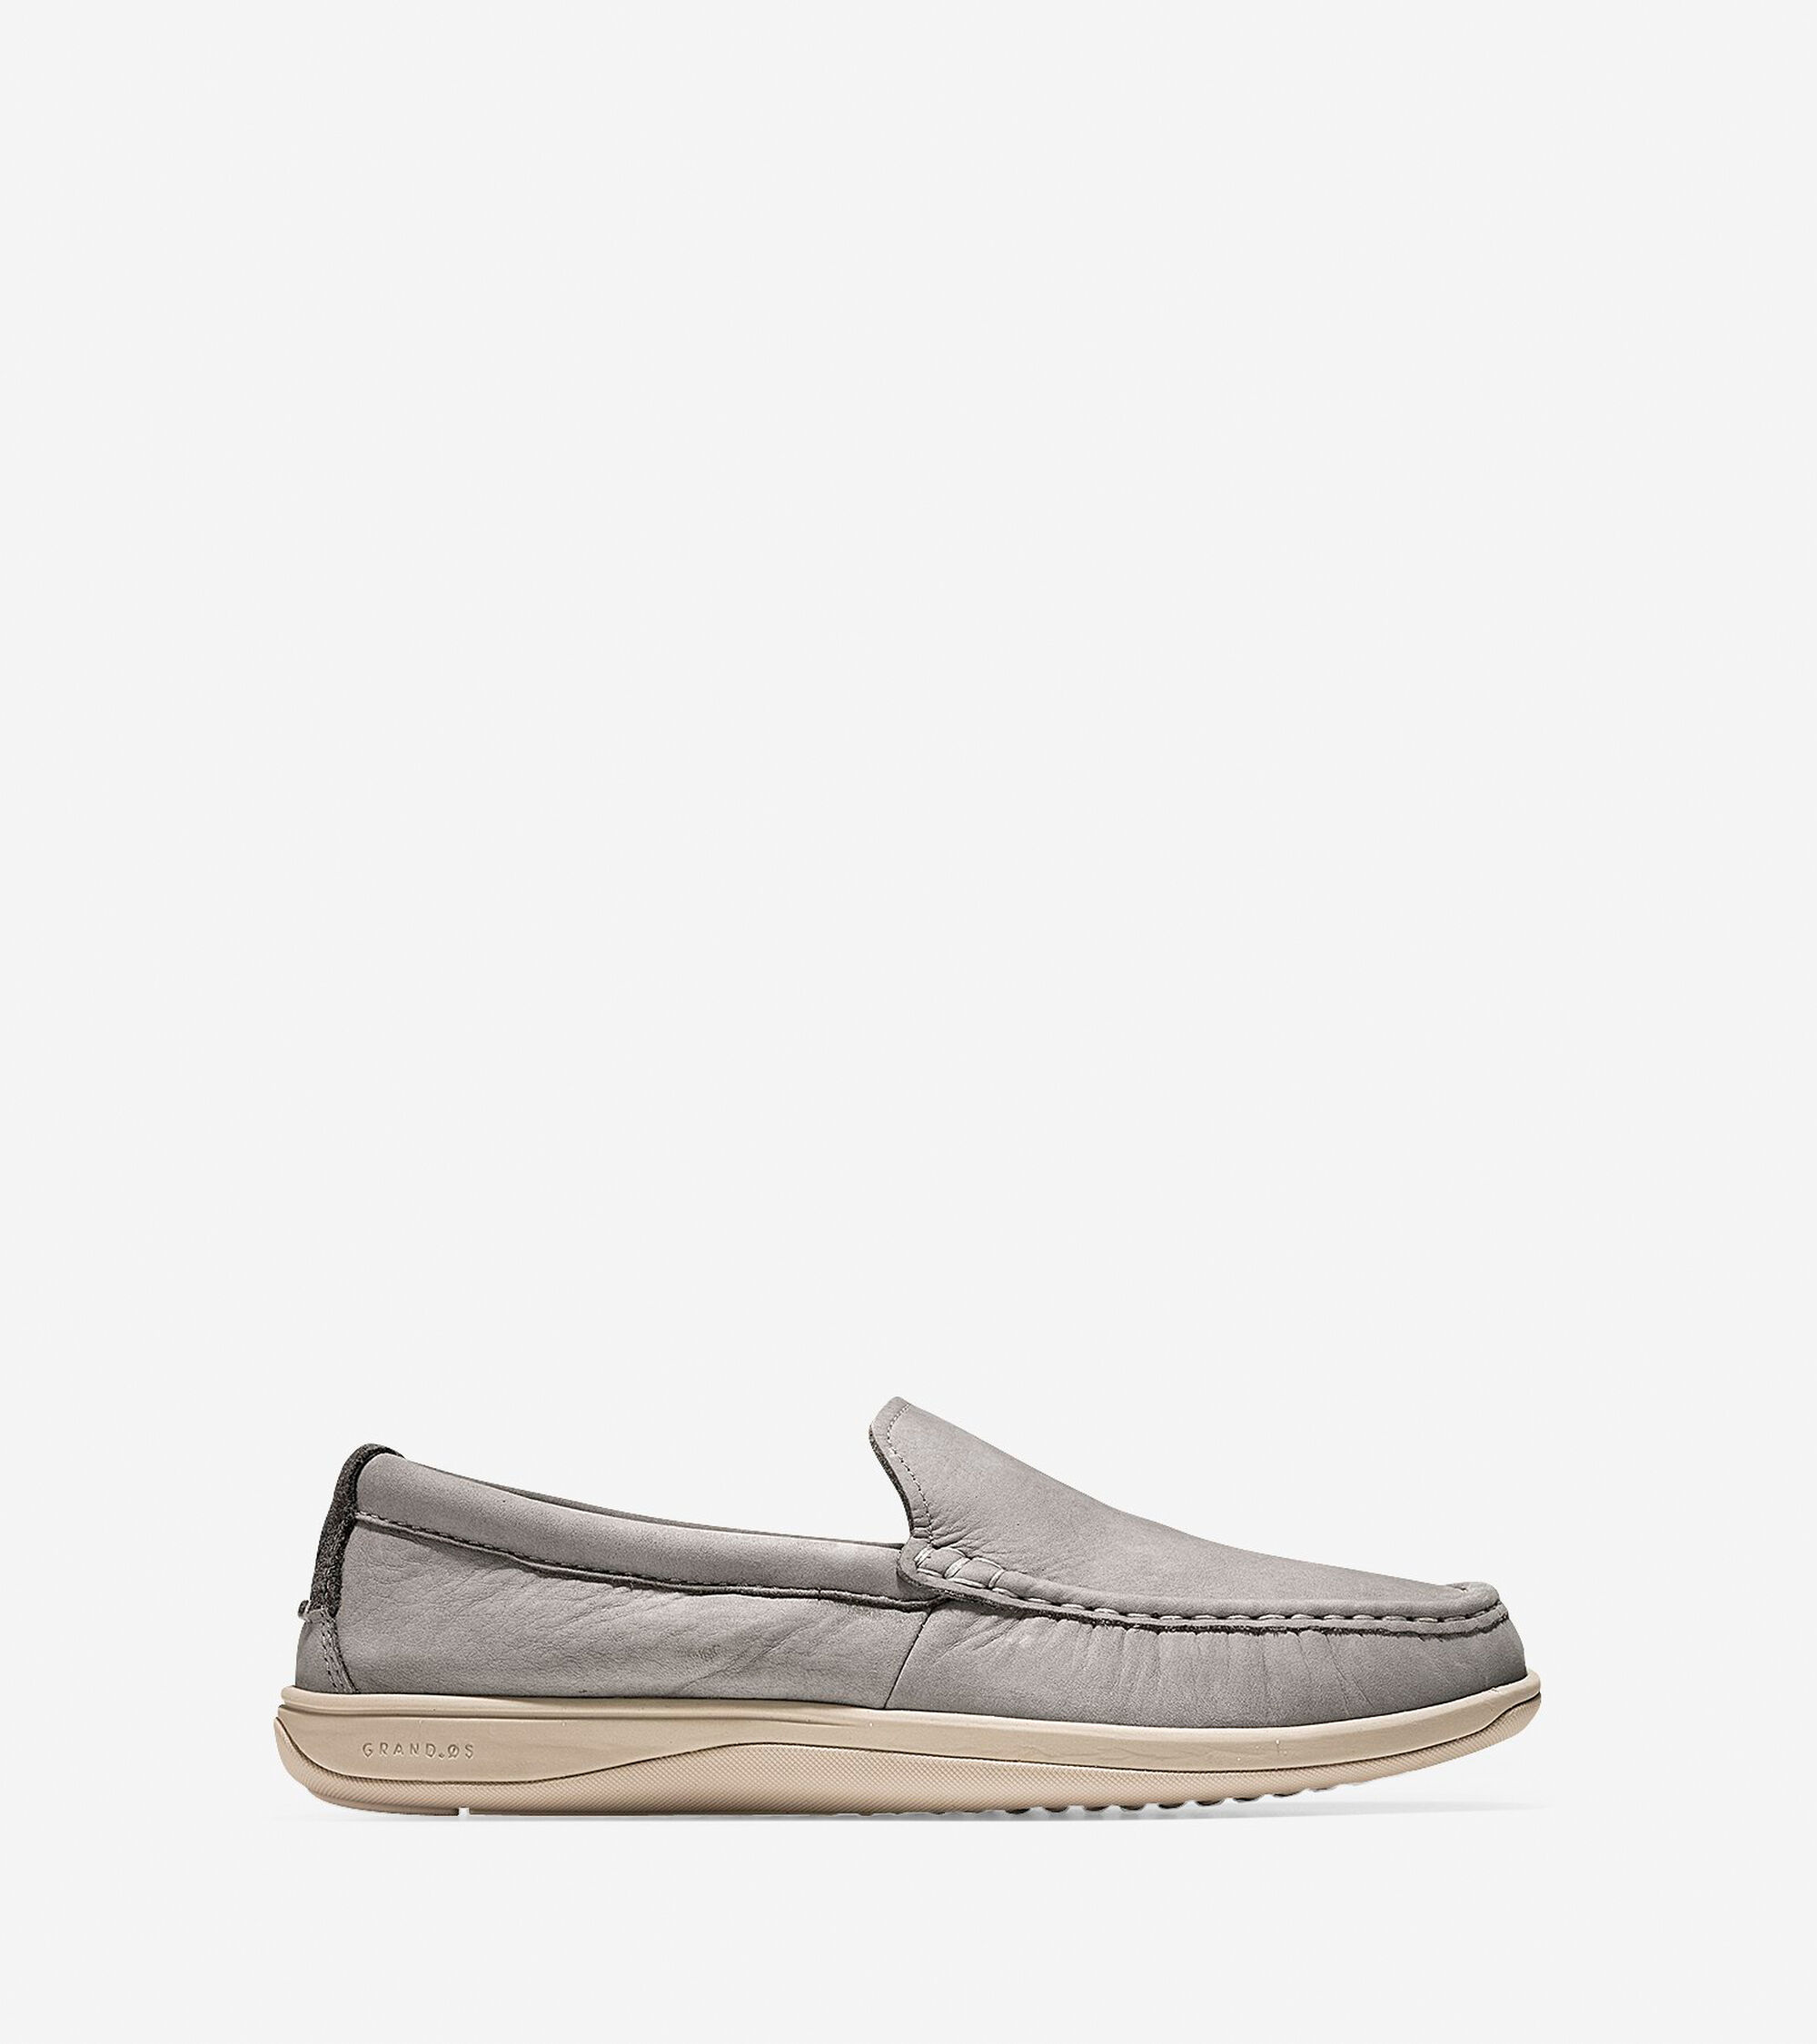 Cole Haan Boothbay Slip On Loafer